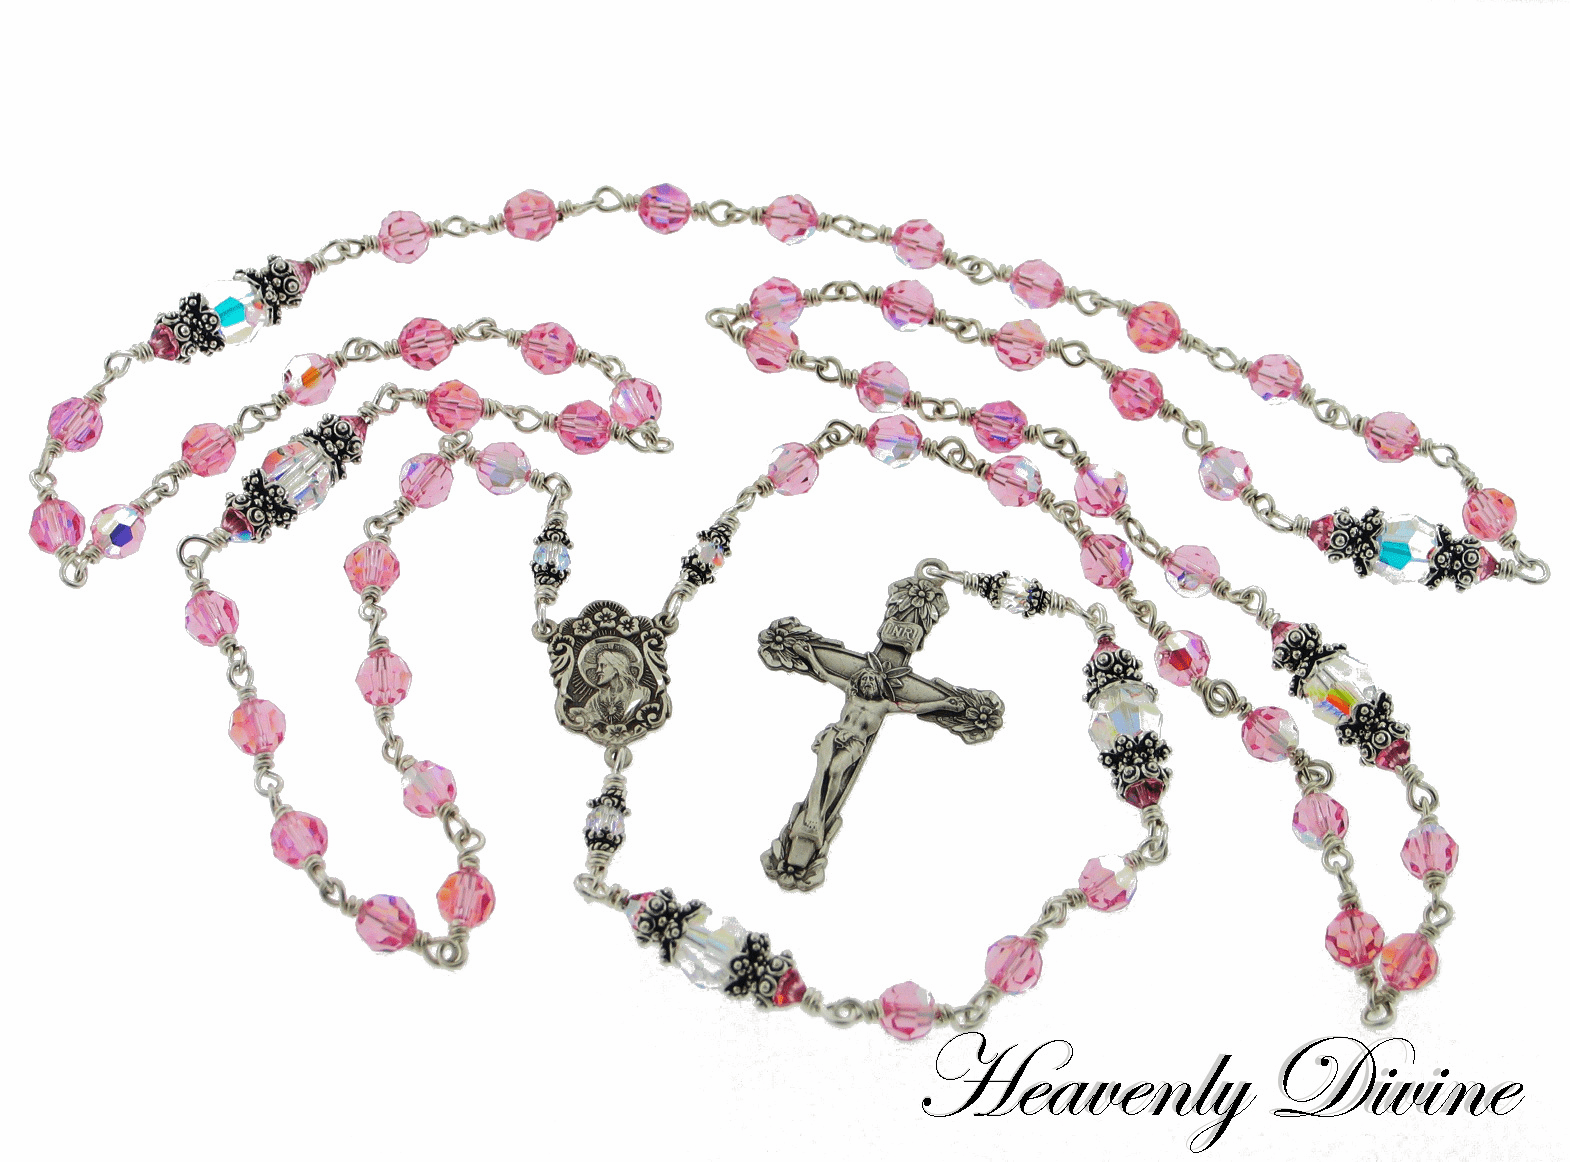 Sacred Heart of Jesus Rose Swarovski Crystal Sterling Rosary by Heavenly Divine